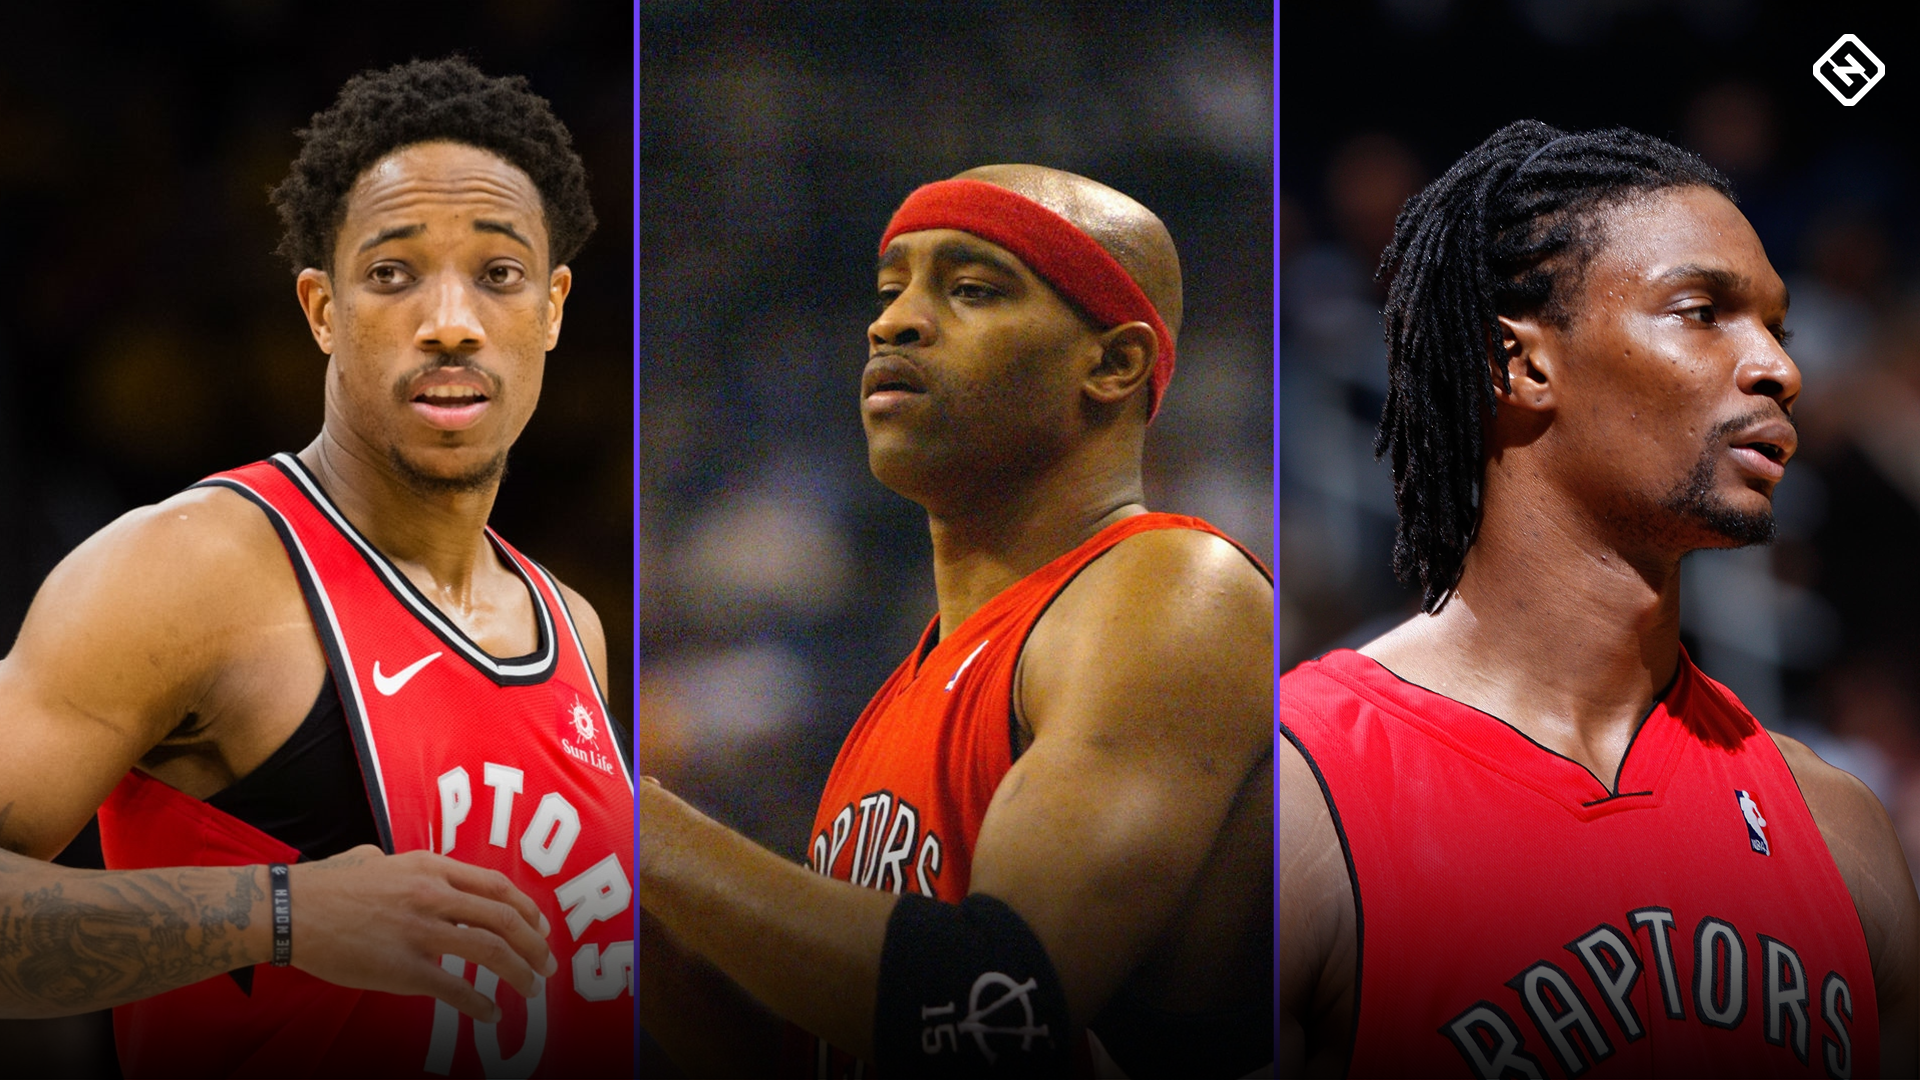 The 5 greatest Toronto Raptors of all time | Sporting News